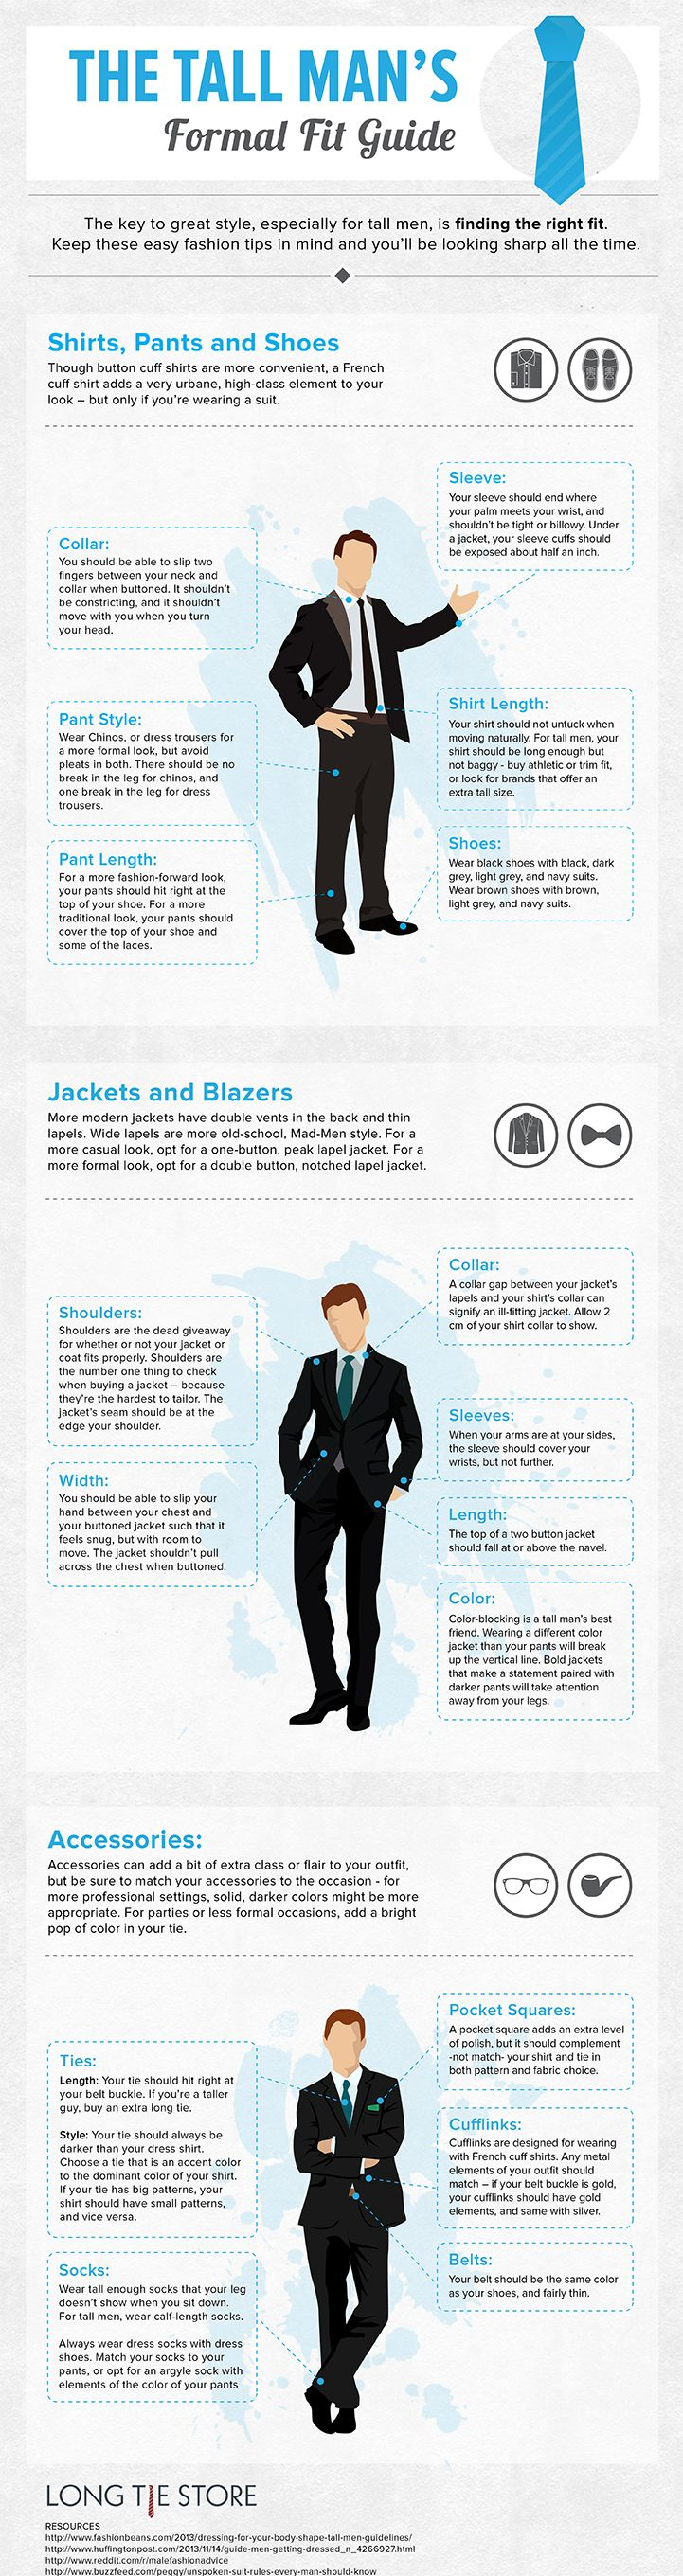 The Tall Man's Formal Fit Guide [infographic] everything